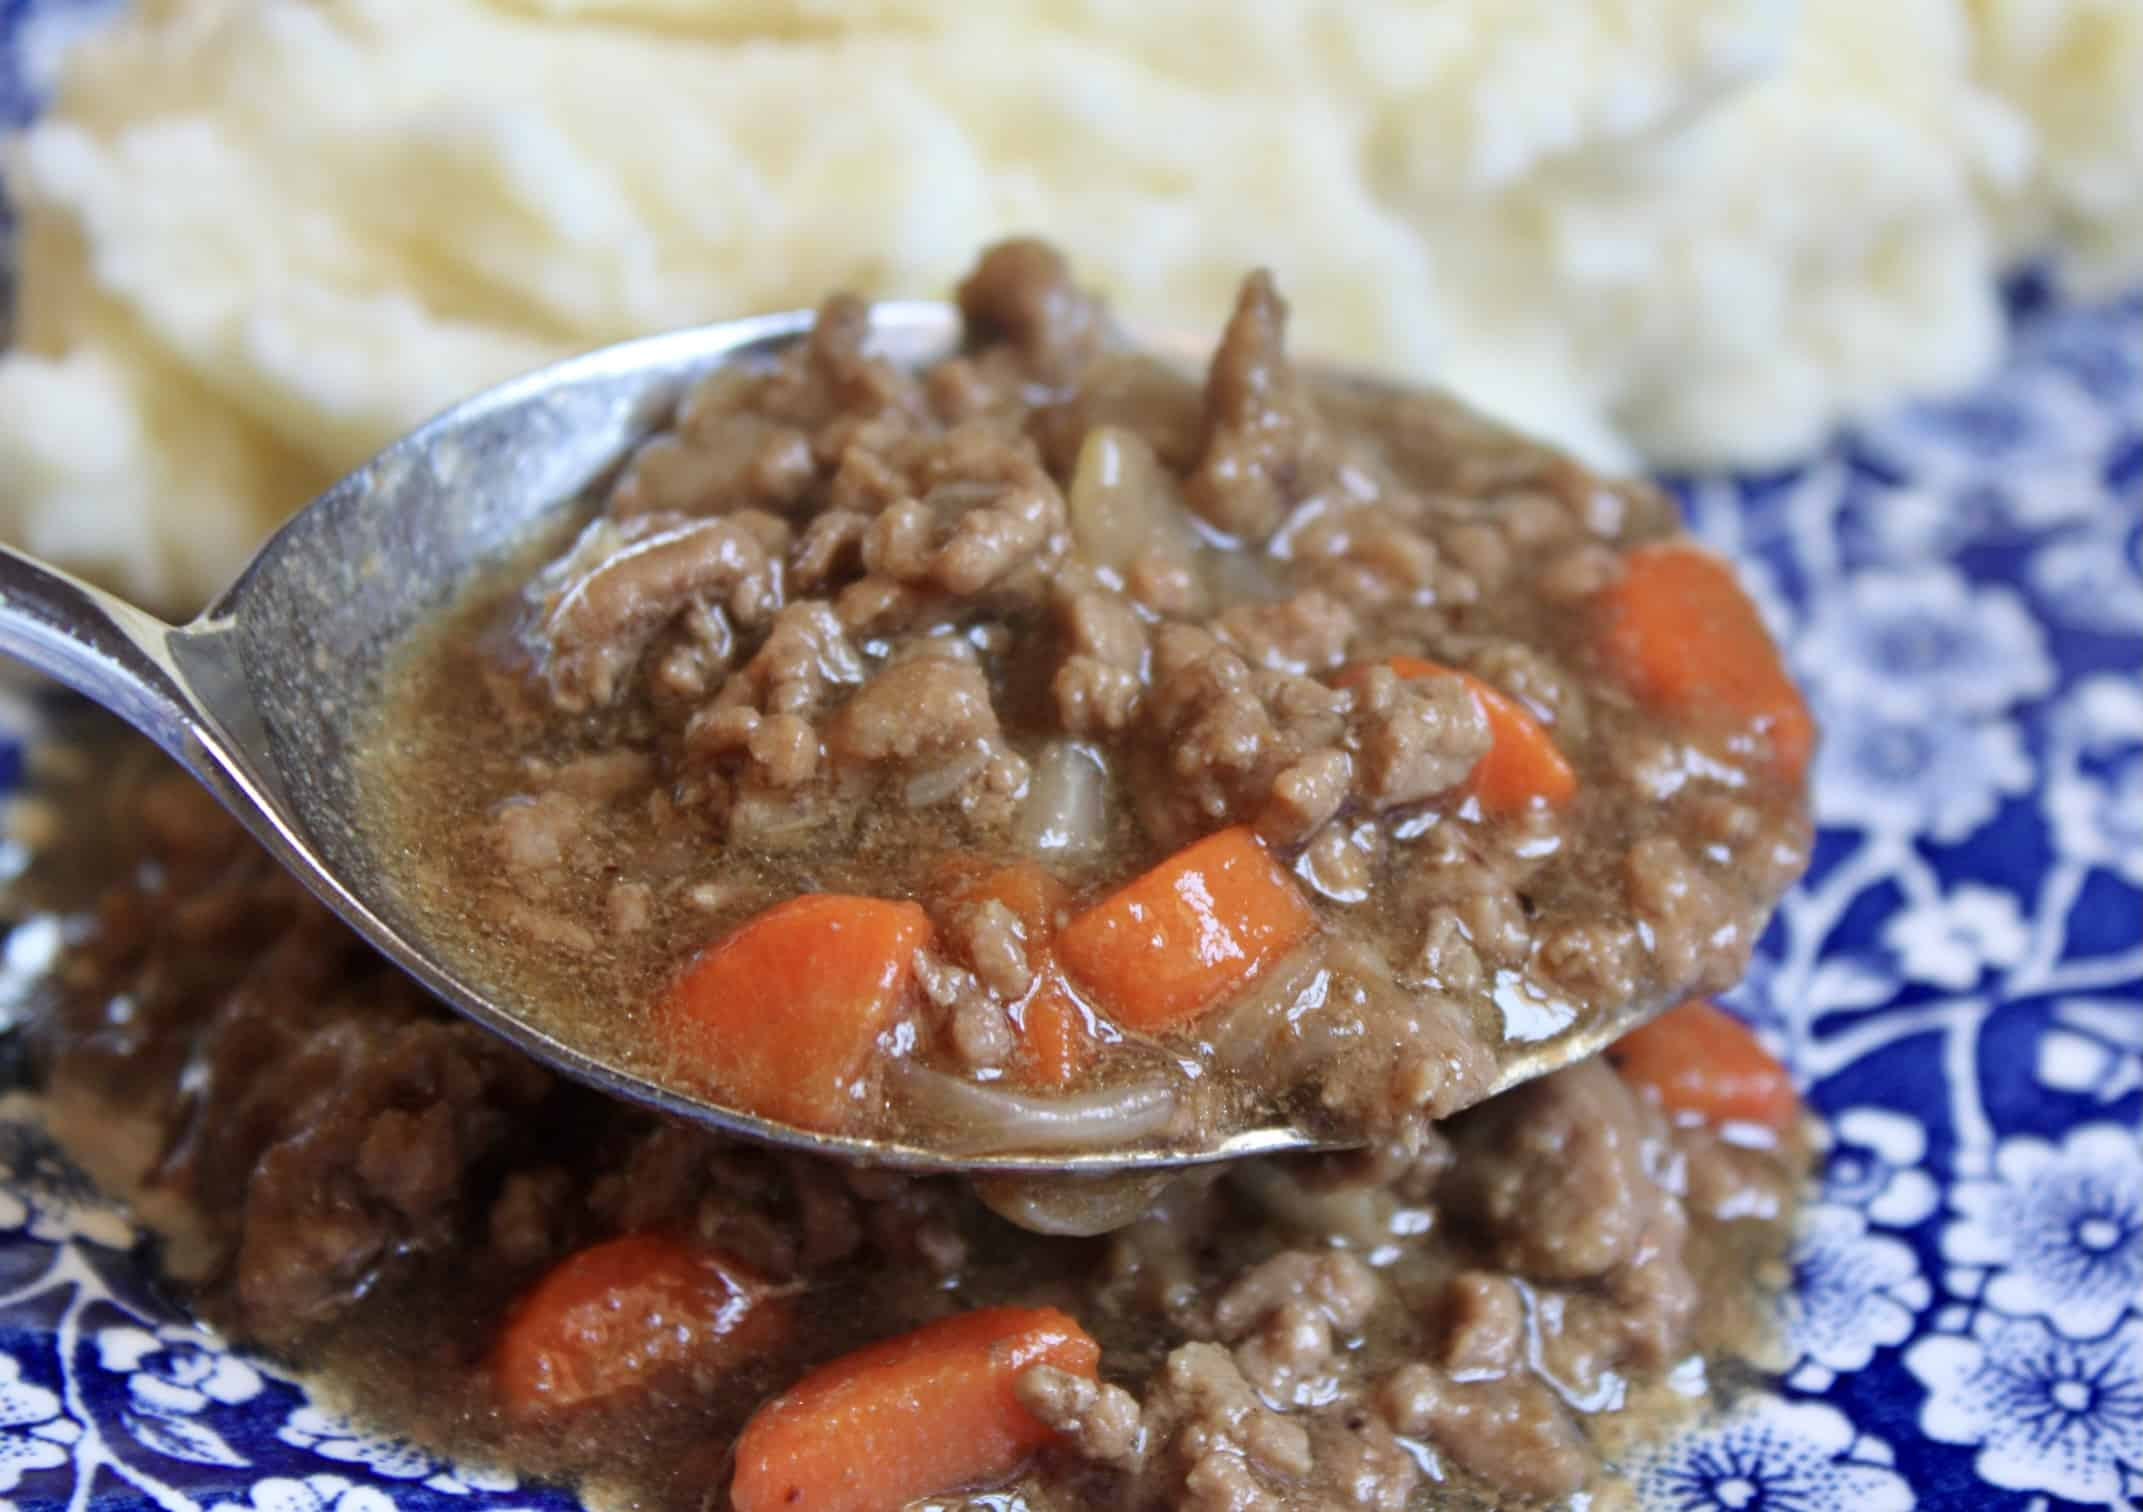 spooning out mince onto a plate with potatoes